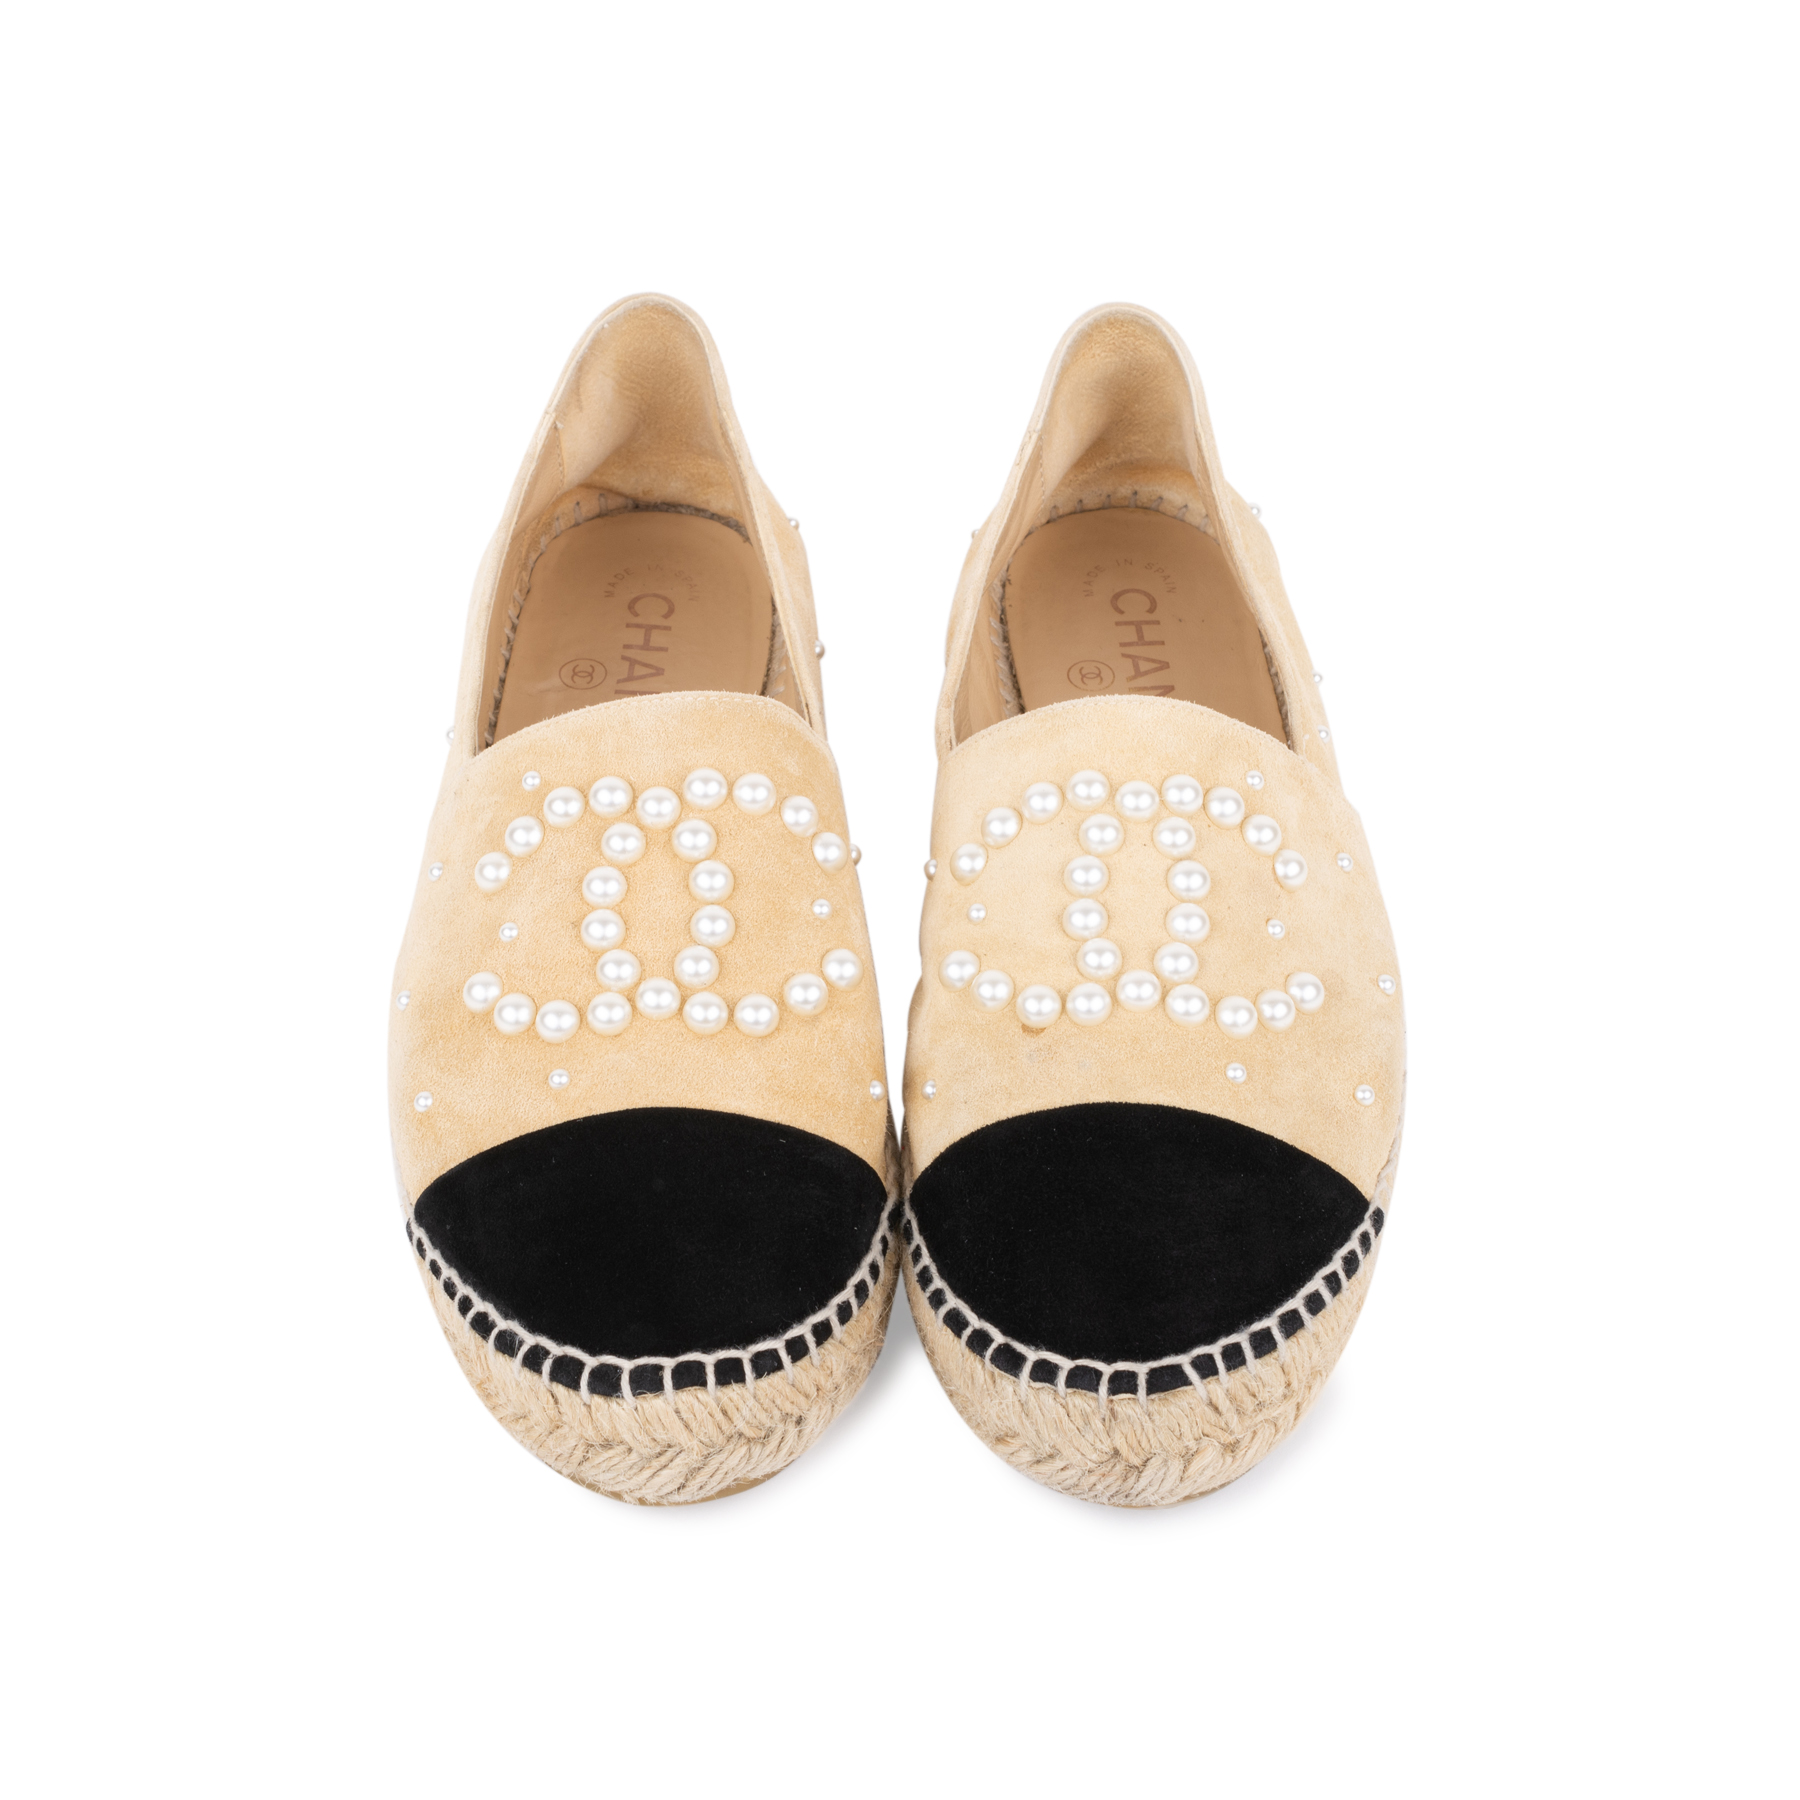 0b19aa111 Authentic Second Hand Chanel Pearl Embellished Suede Espadrilles  (PSS-197-00111) - THE FIFTH COLLECTION